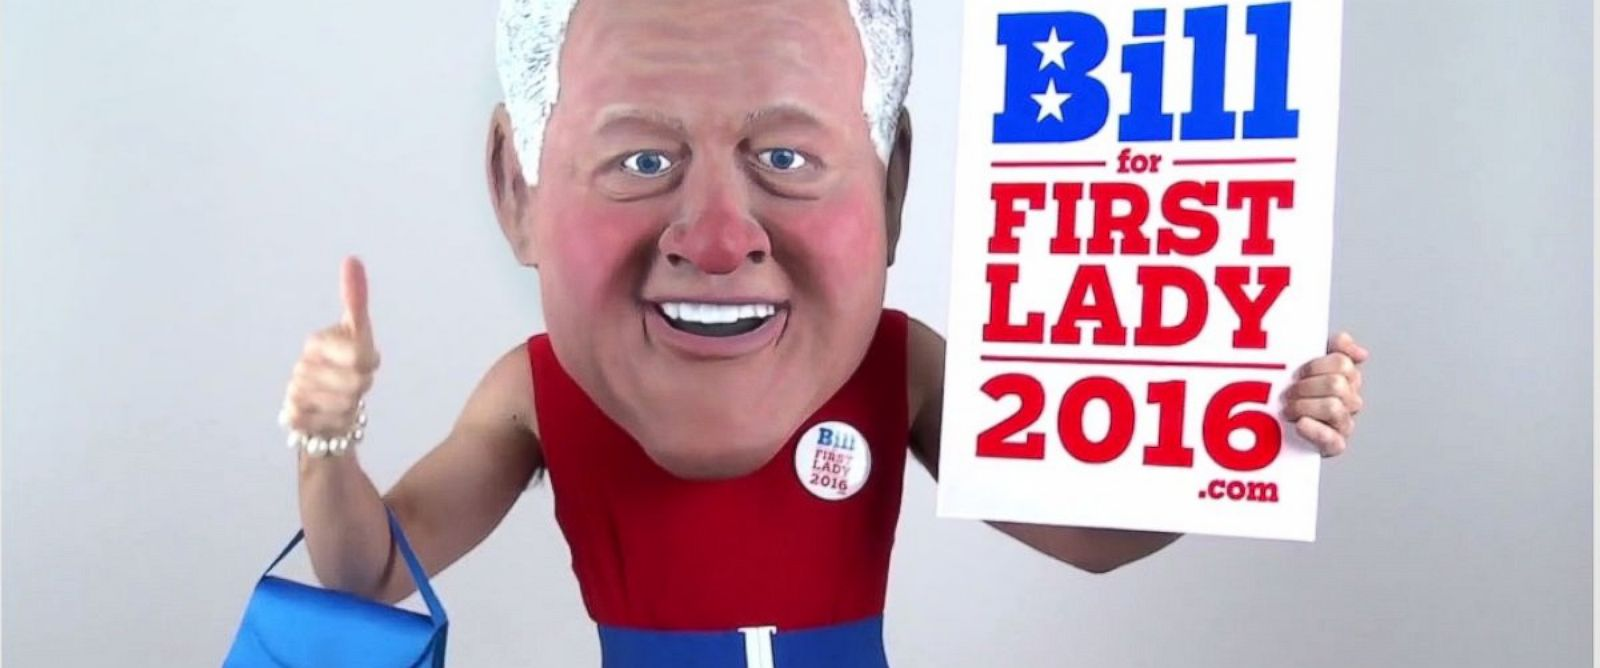 PHOTO: An actor dressed as BIll Clinton appears in a video posted online as a part of a grassroots campaign.